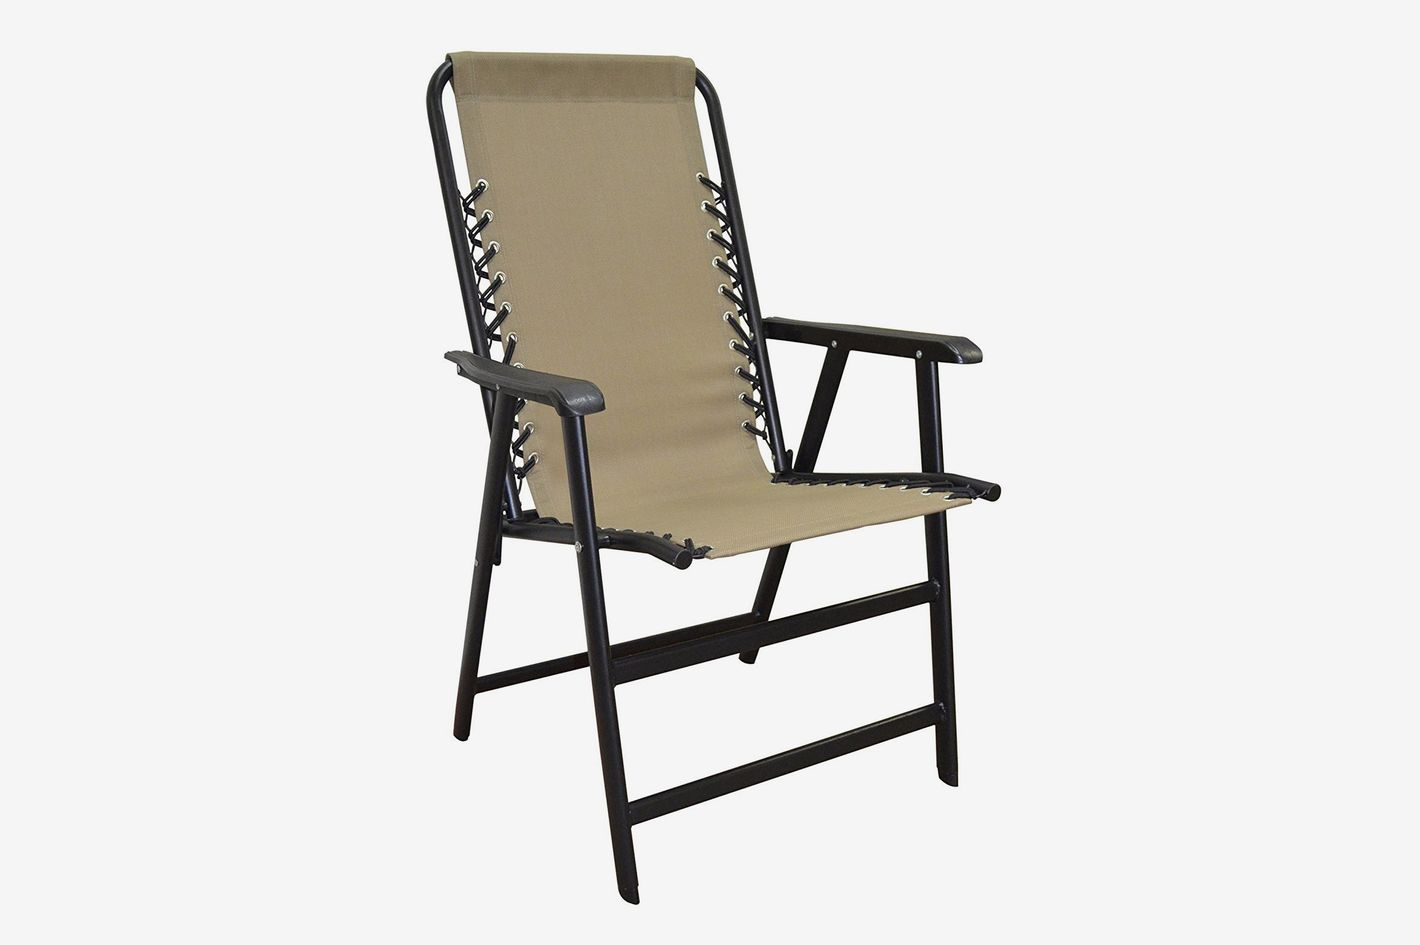 Caravan Sports Suspension Folding Chair At Amazon